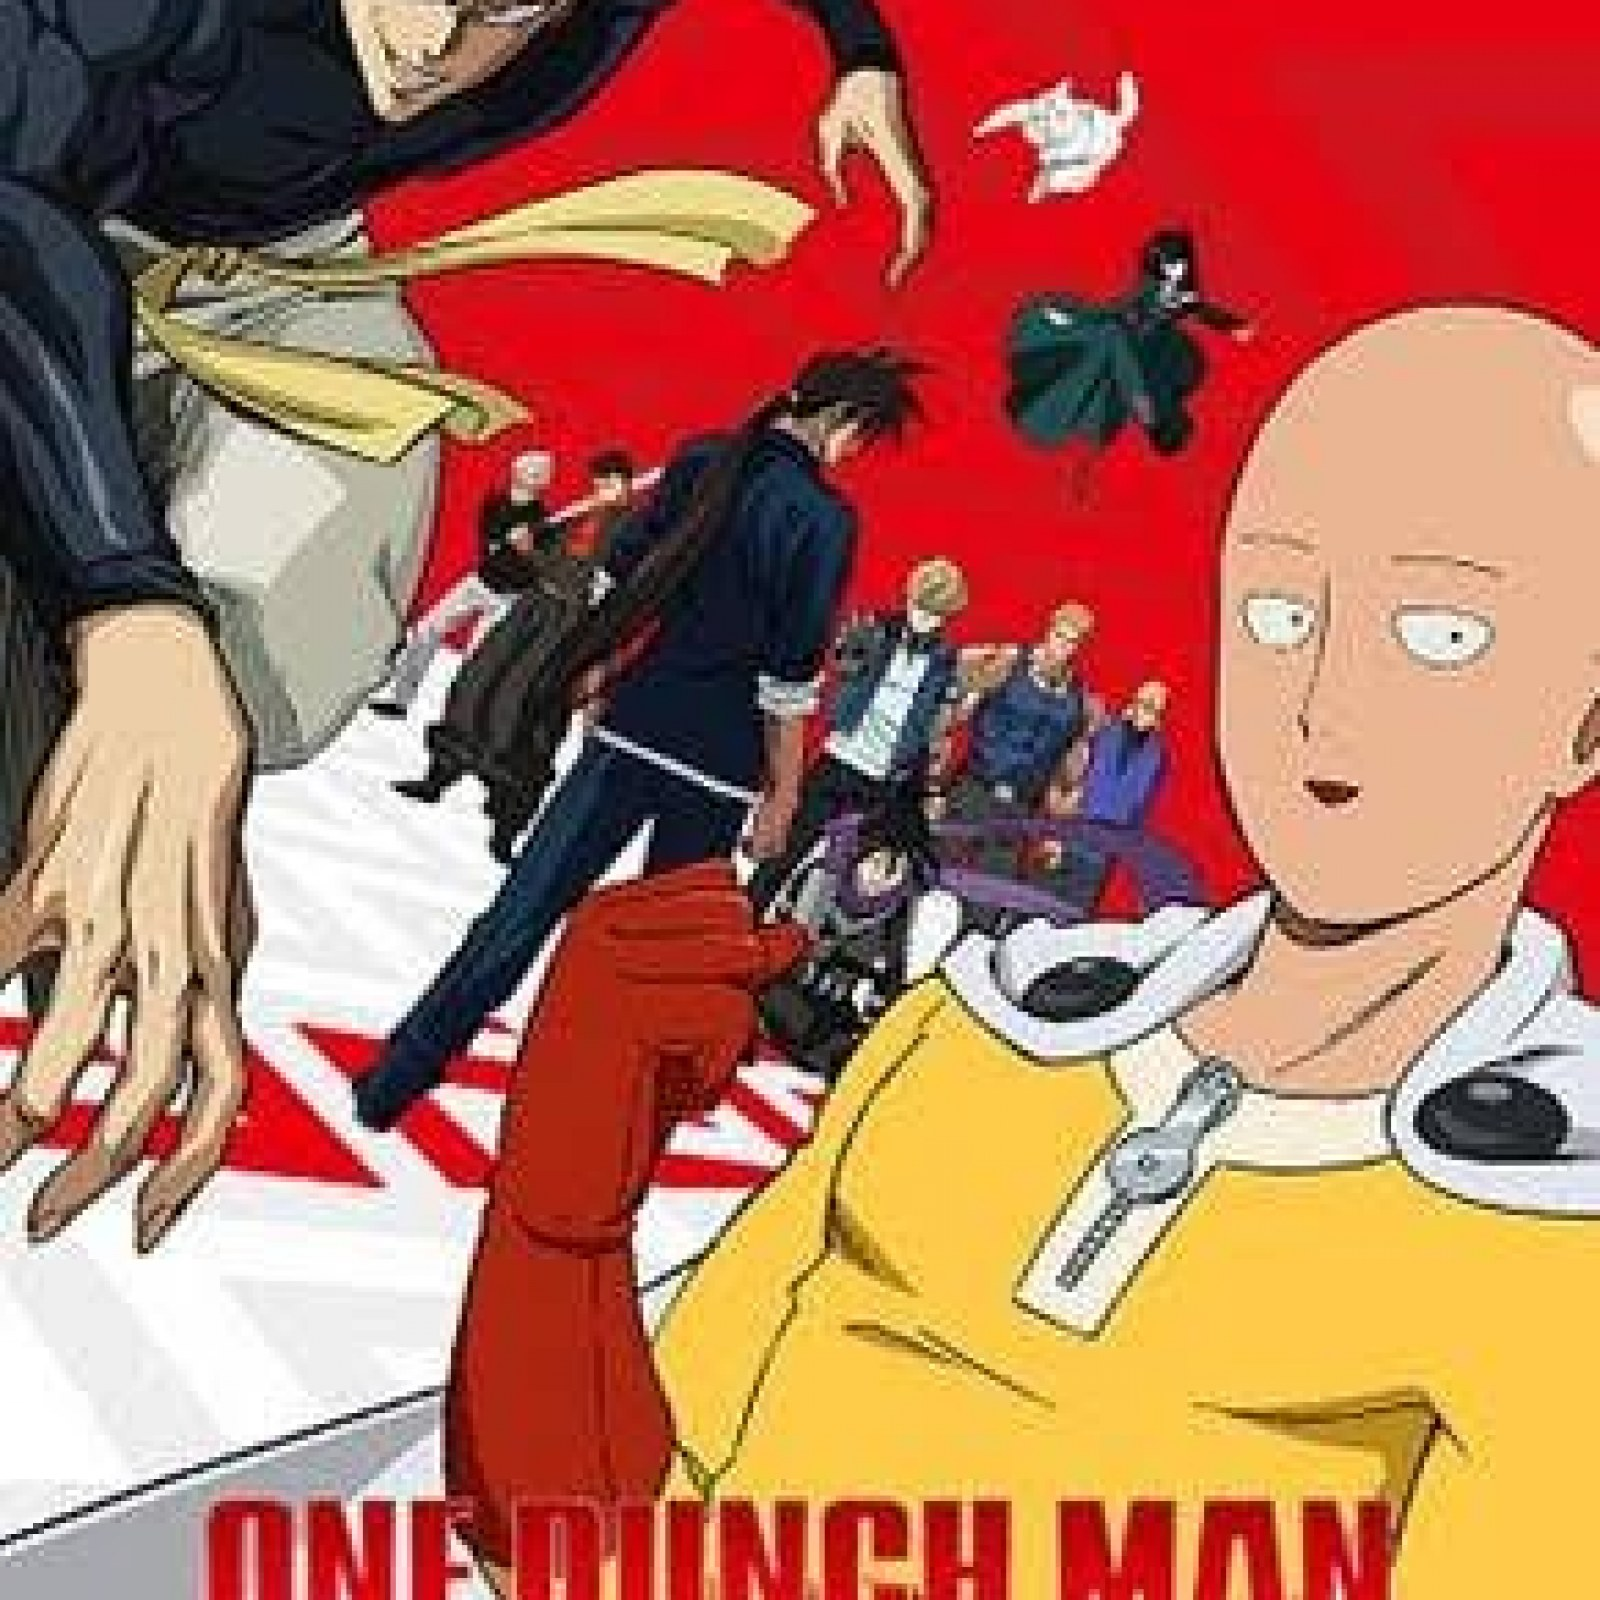 One-Punch Man' Season 2: How to Watch Online